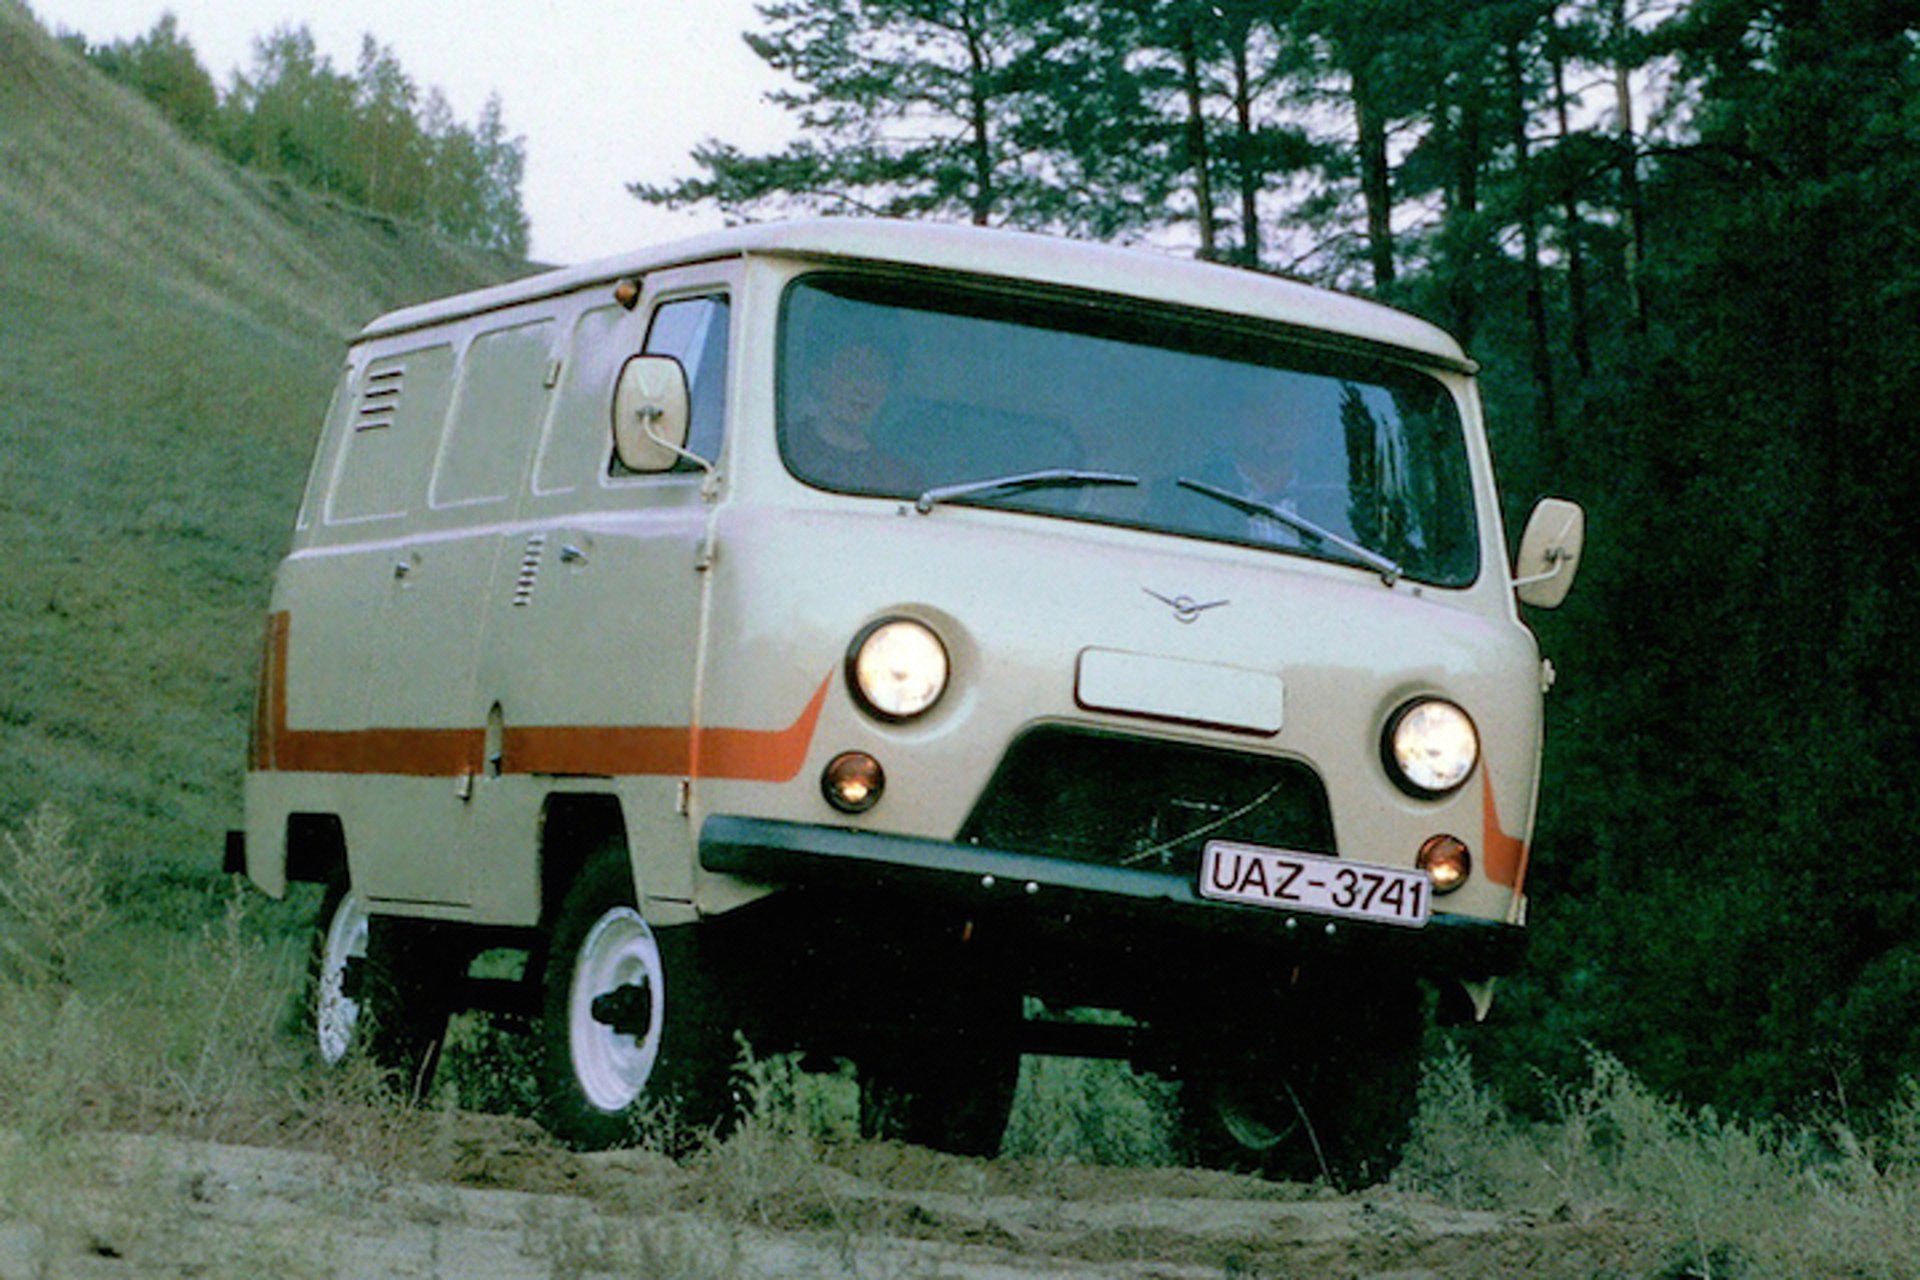 Vehicles For Sale: 7 Of Russia's Most Awesome Off-Road Vehicles